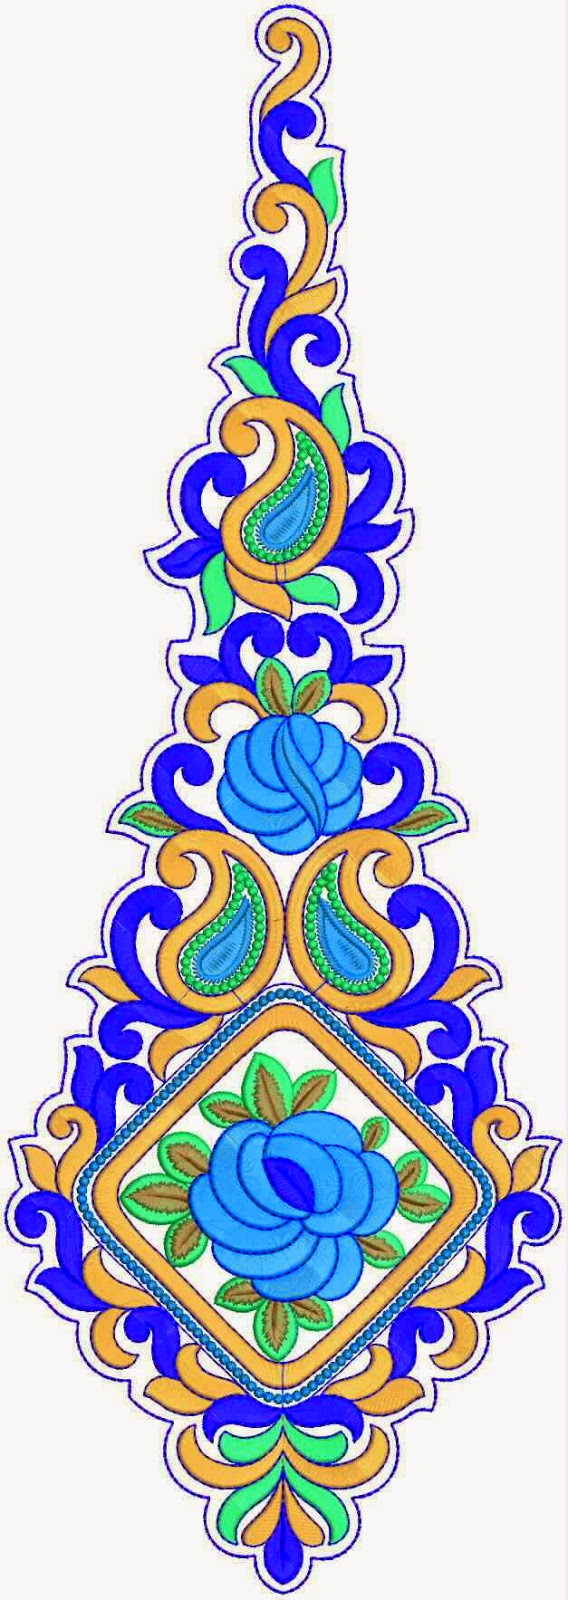 Embdesigntube brooches patterns batik fabric applique designs - Appliques exterieures ontwerp ...